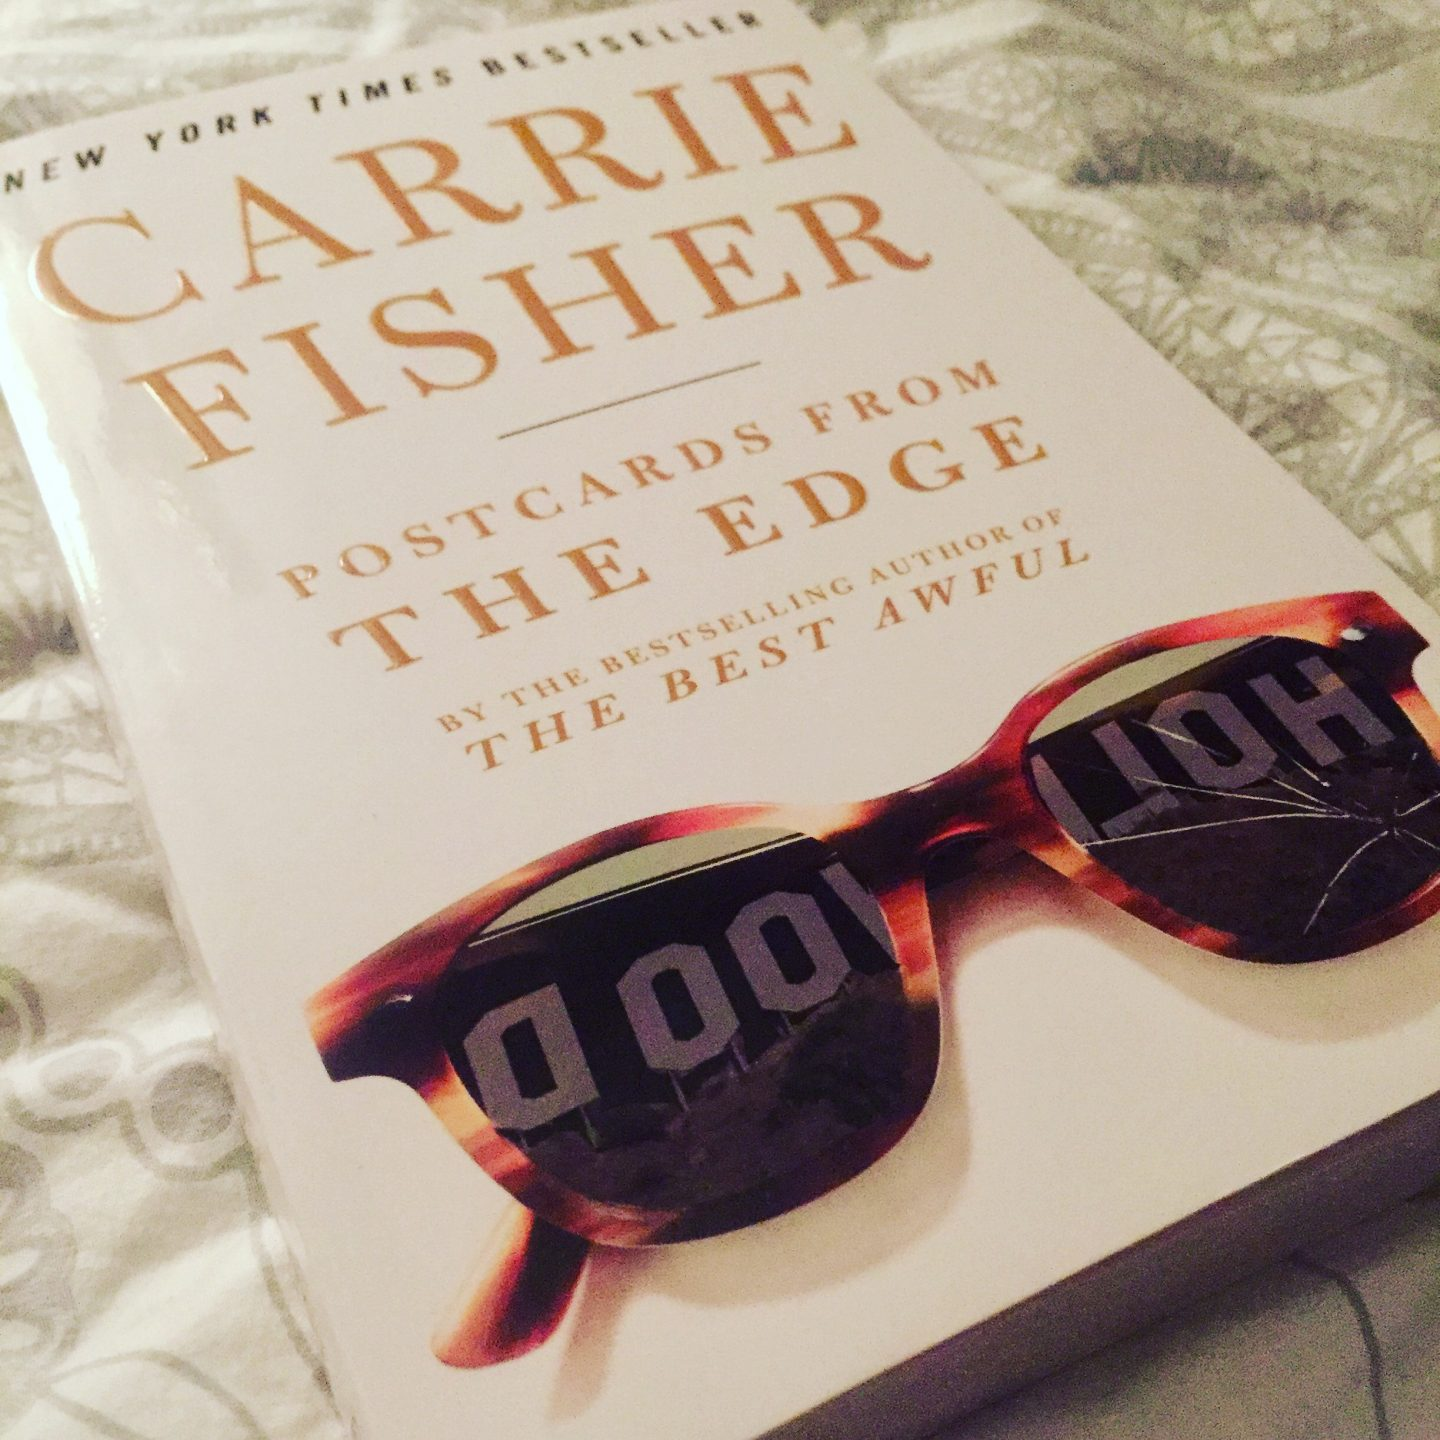 REVIEW | Postcards from the Edge by Carrie Fisher